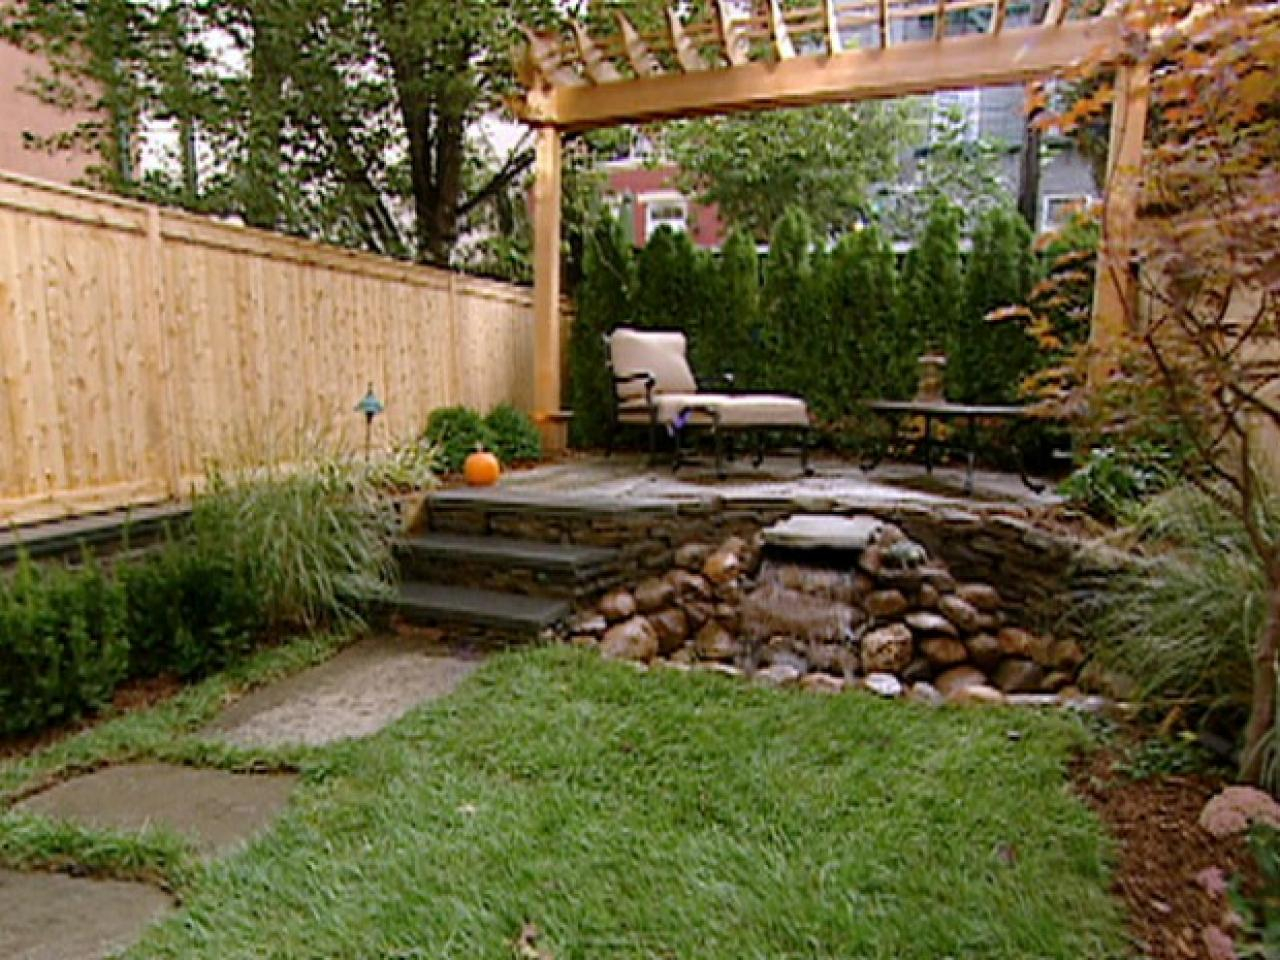 New Landscaping Ideas For Small Yards Outdoor Design York House with Backyards Ideas Patios